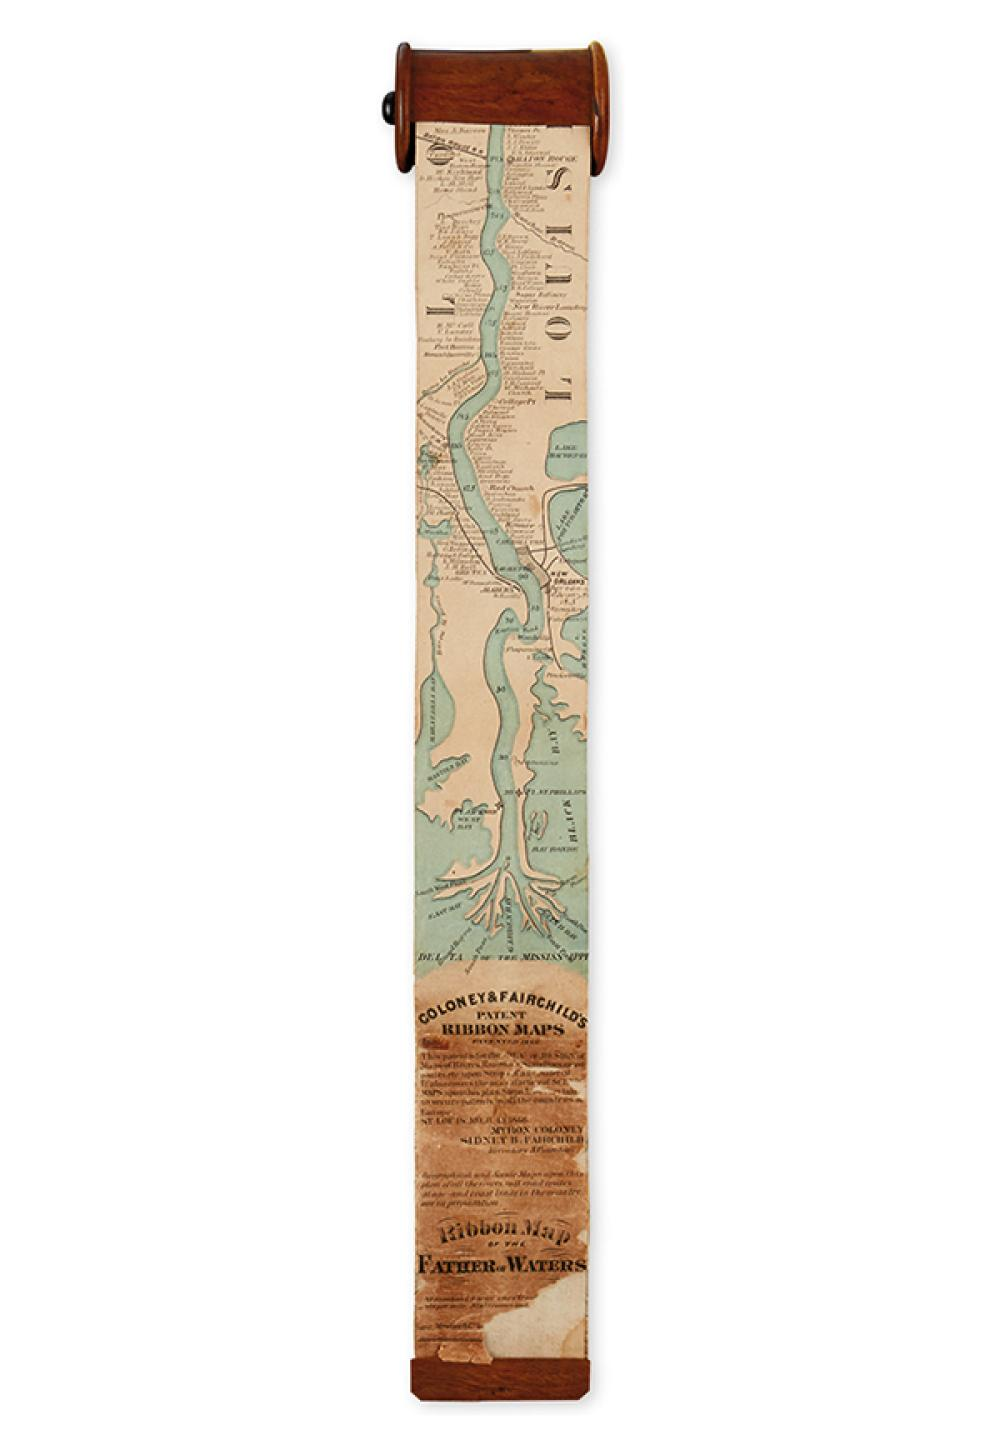 (MISSISSIPPI RIVER). Coloney, Myron; and Fairchild, Sidney B. Ribbon Map of the Father of Waters.